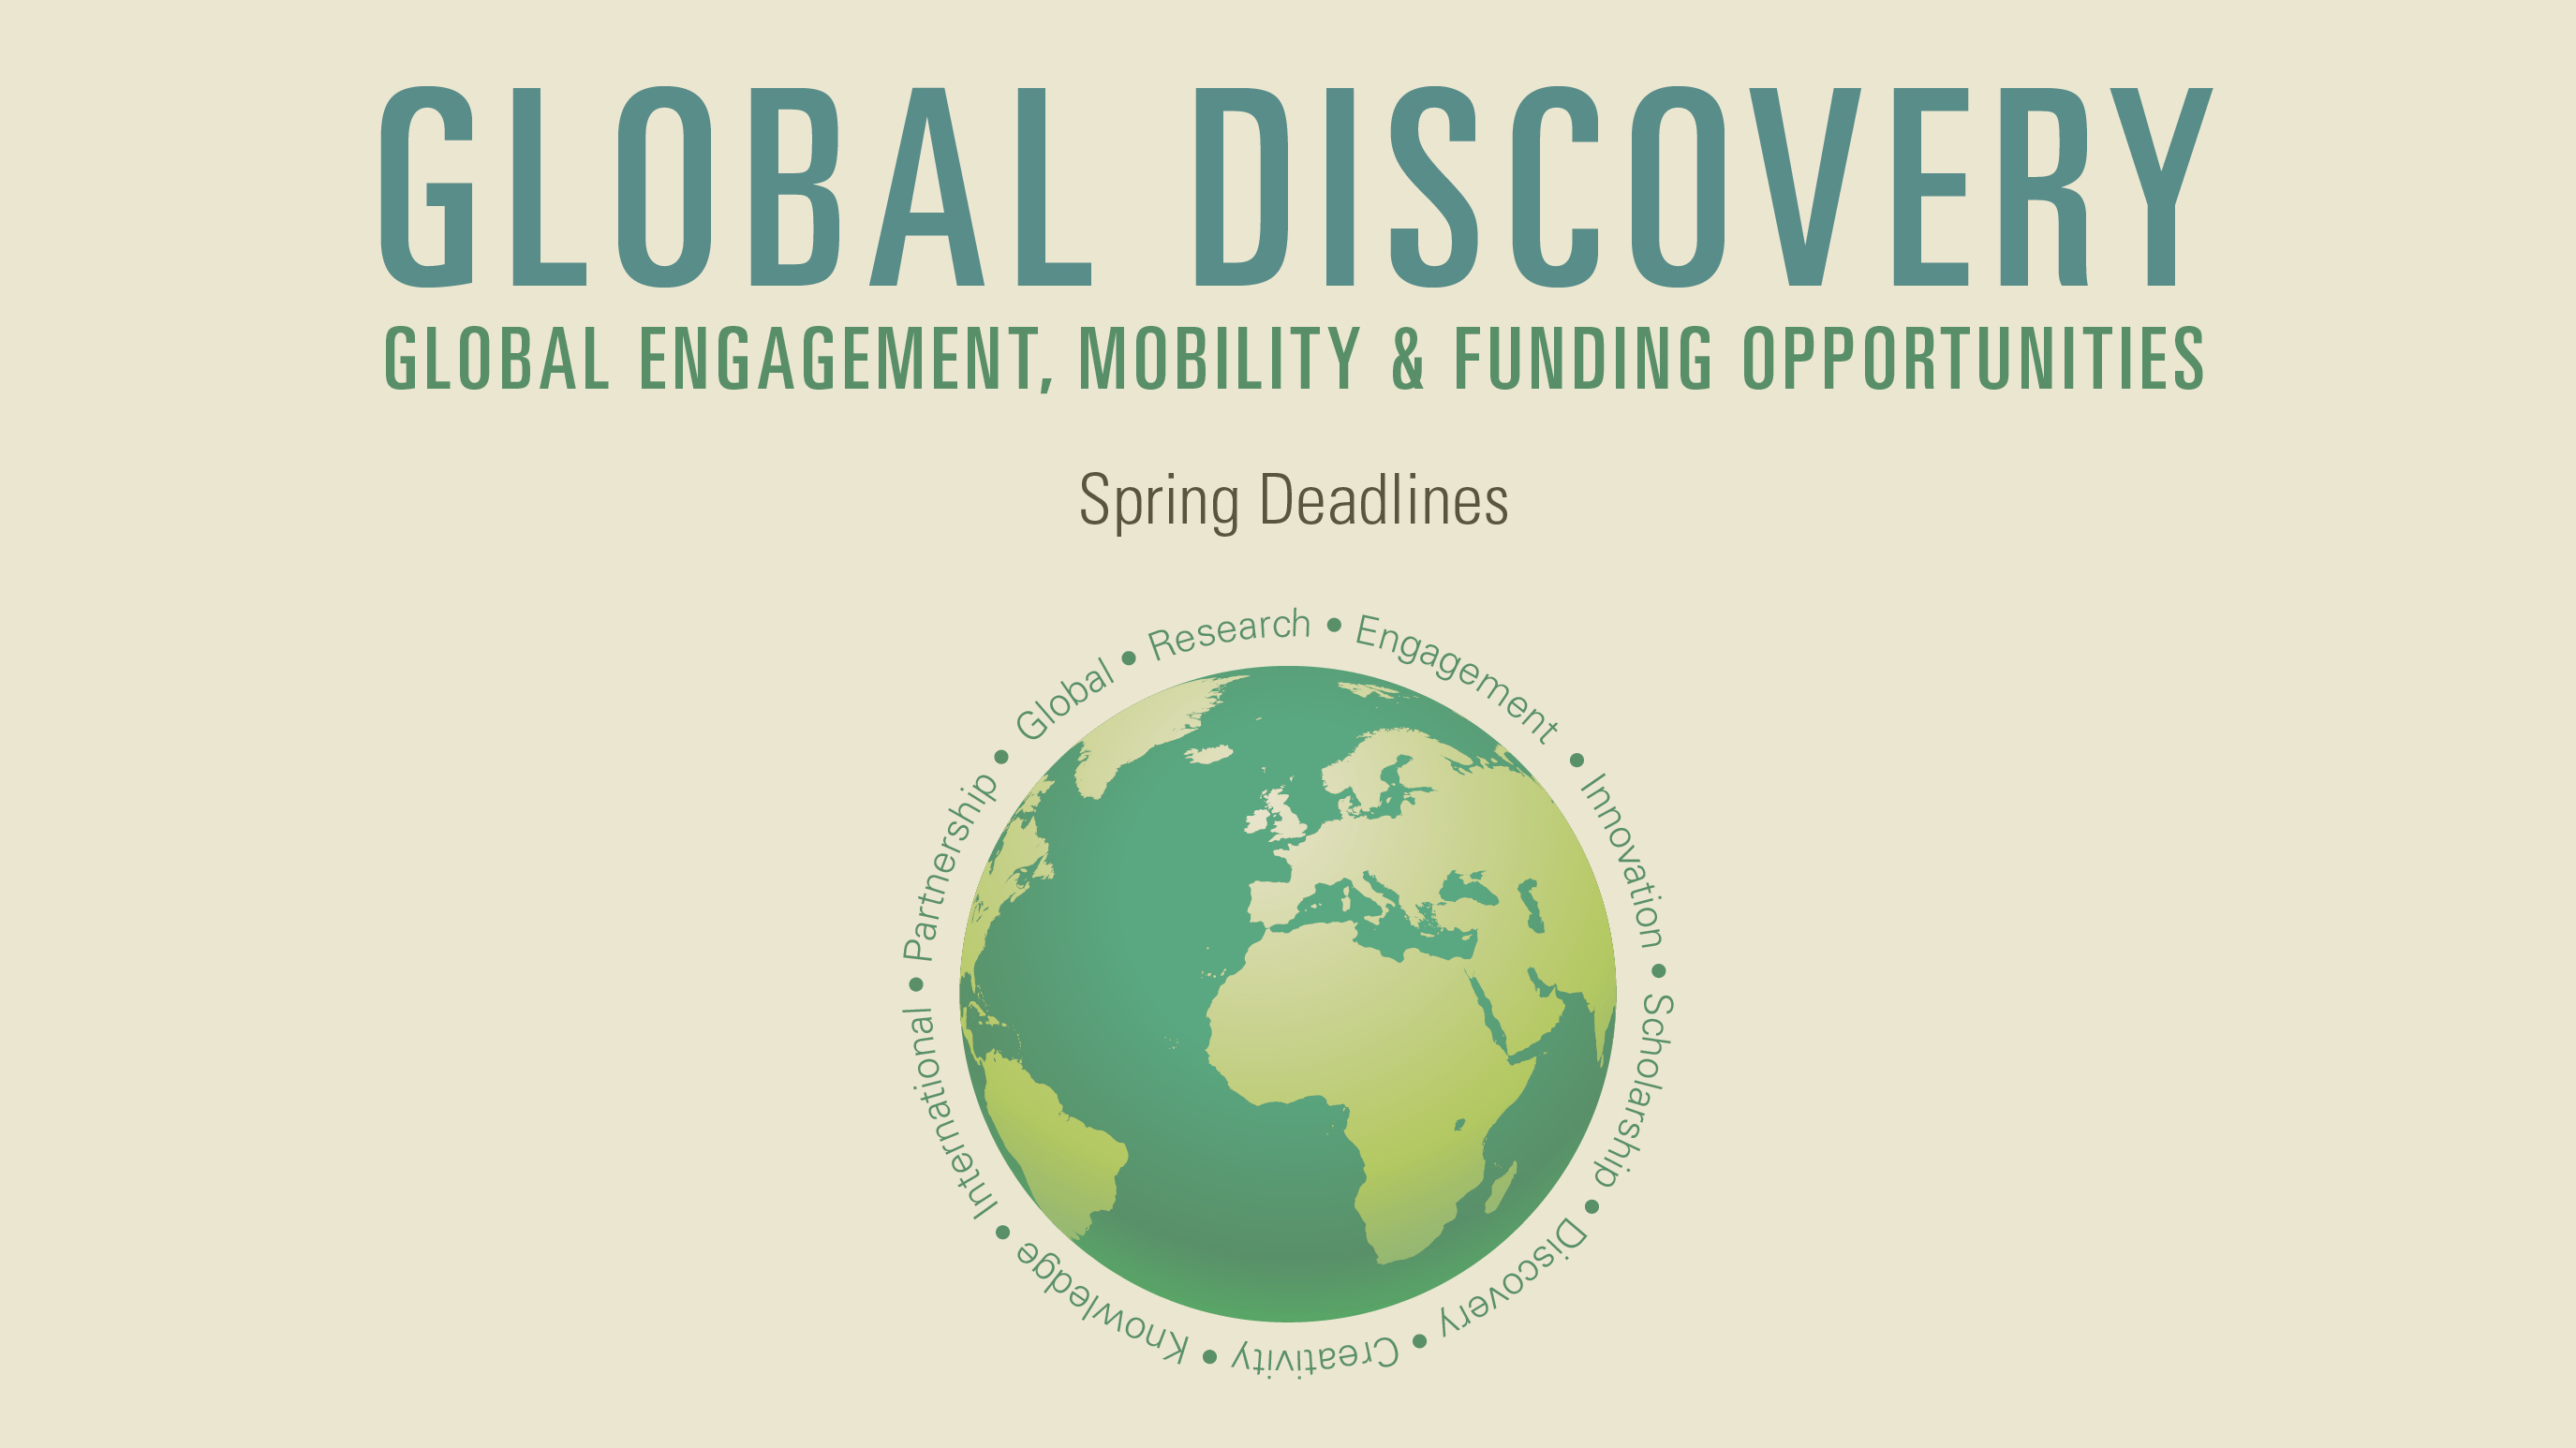 Global Discovery Newsletter - Spring 2018 - Global Engagement, Mobility & Funding Opportunities